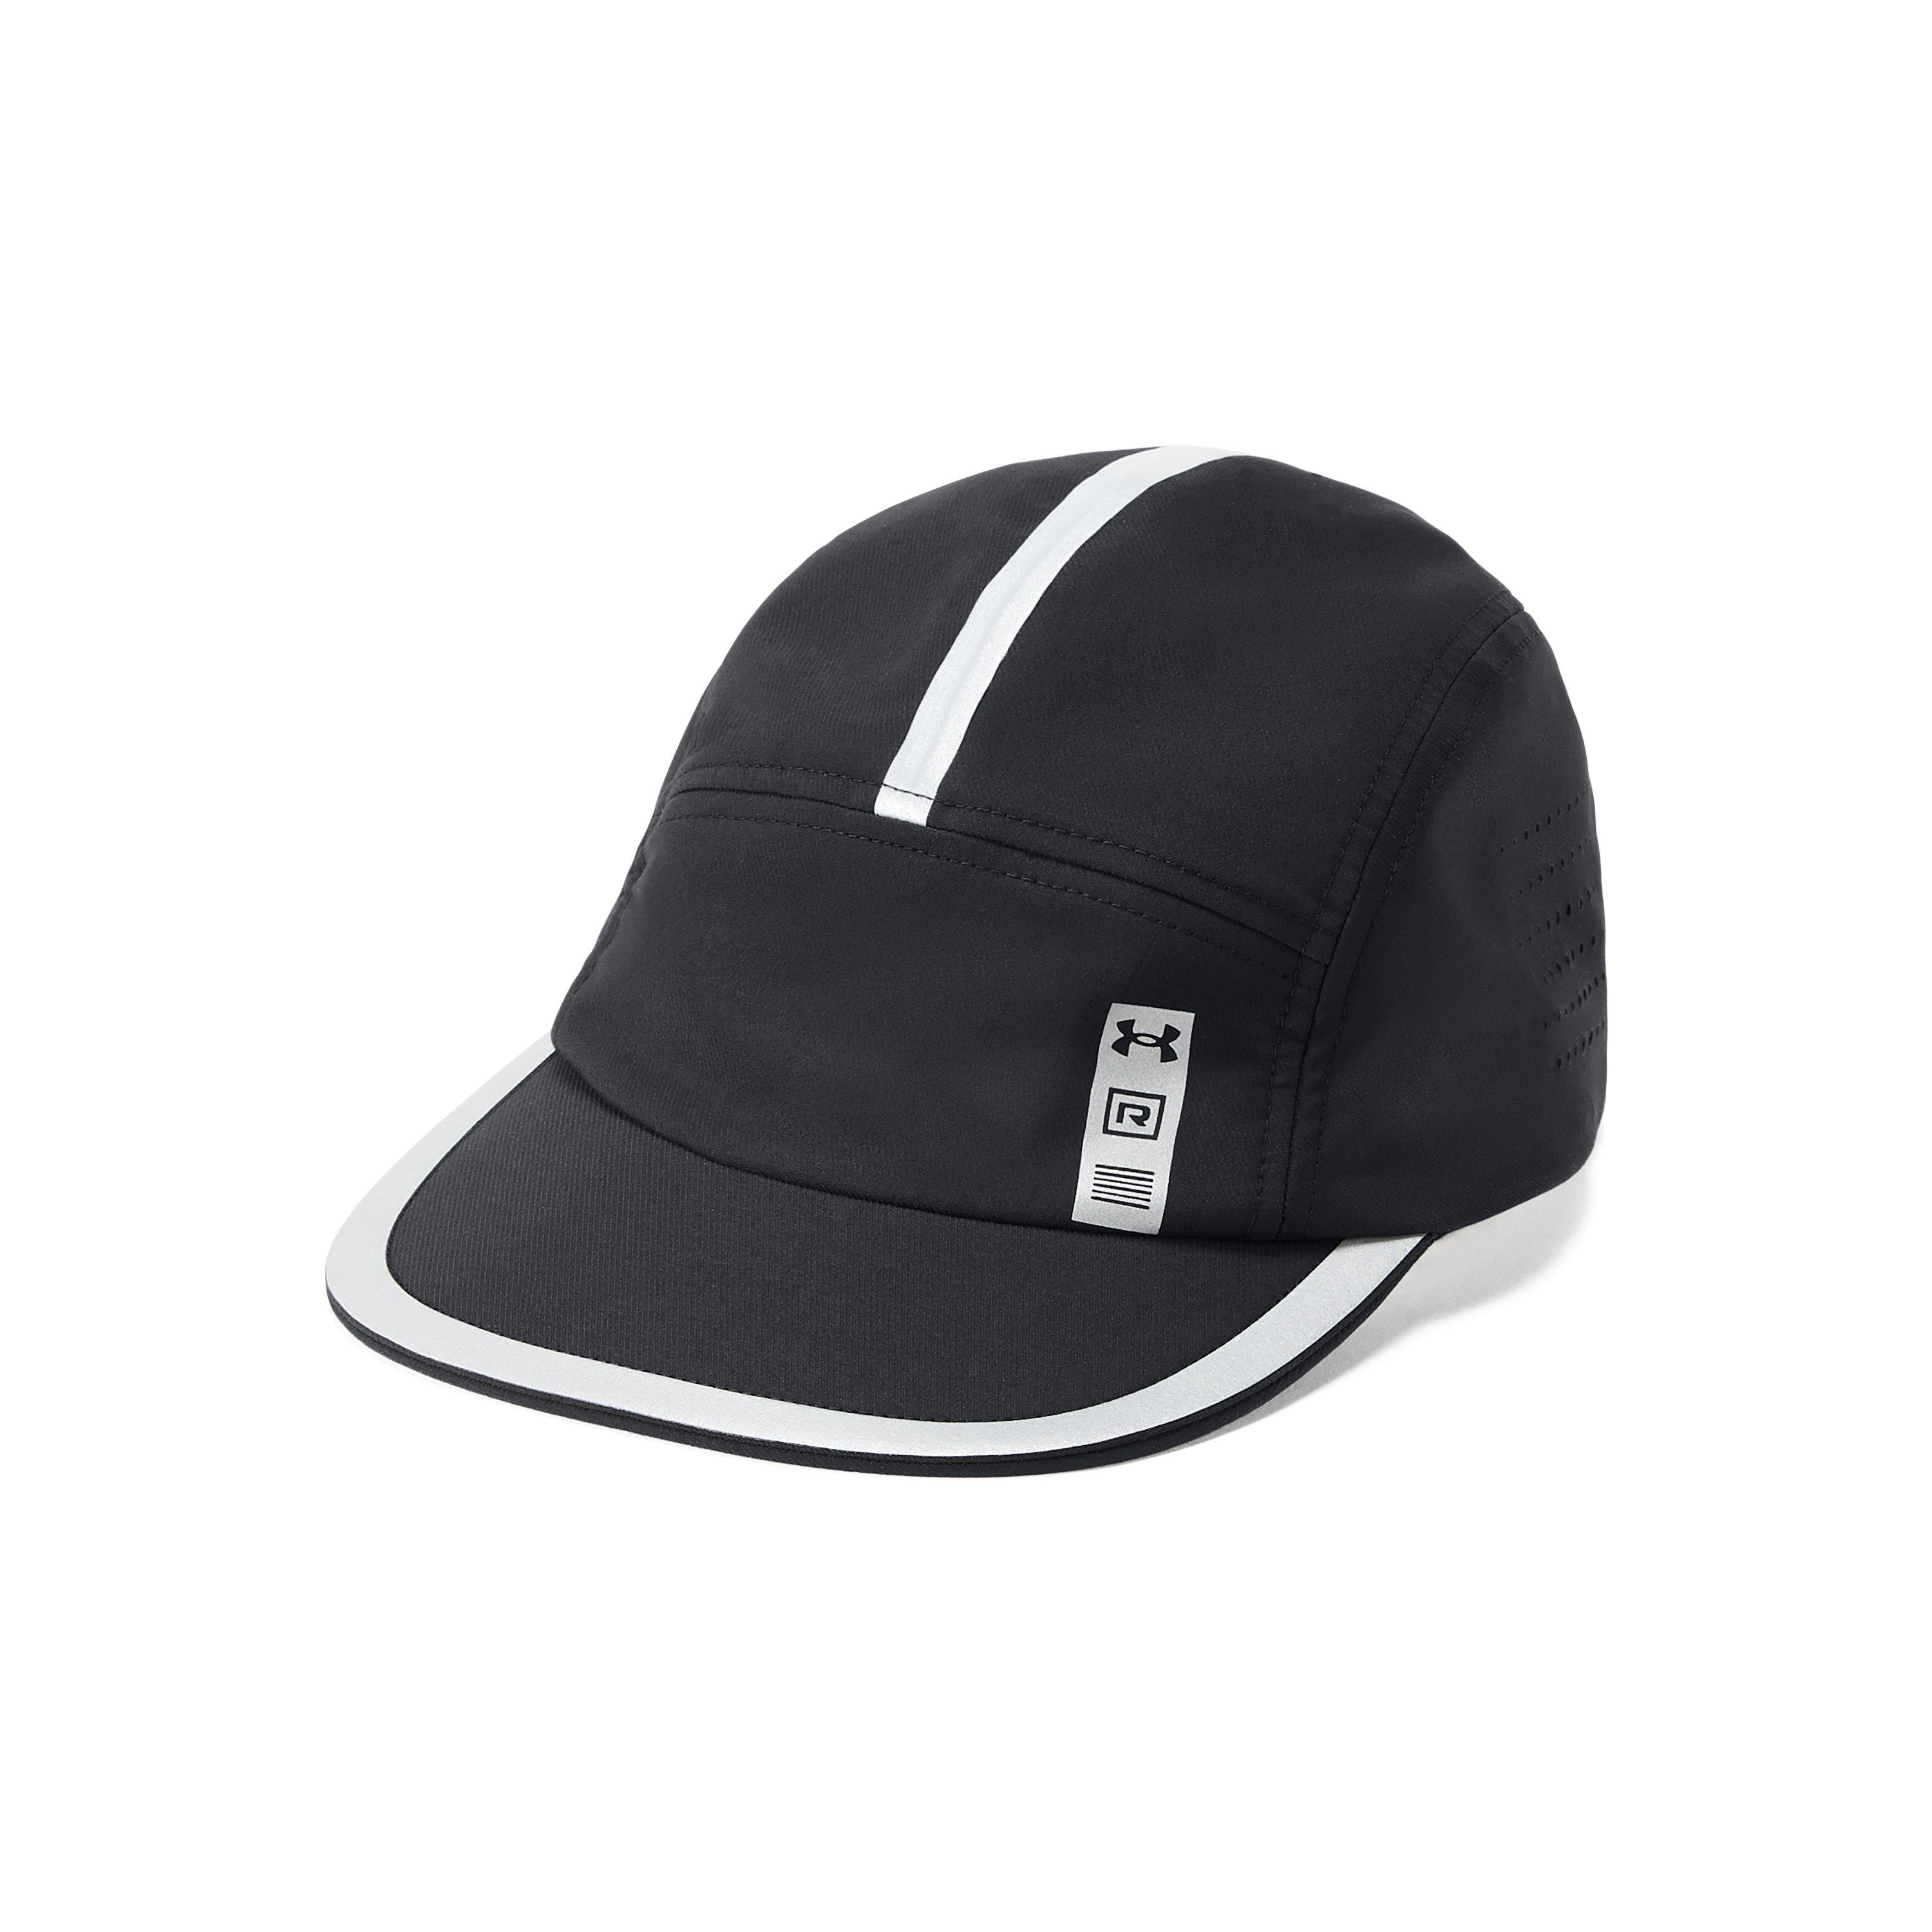 quality design 6dd75 76d77 ... ireland lyst under armour mens ua threadborne run crew cap in black for  men 46e94 5fa1f